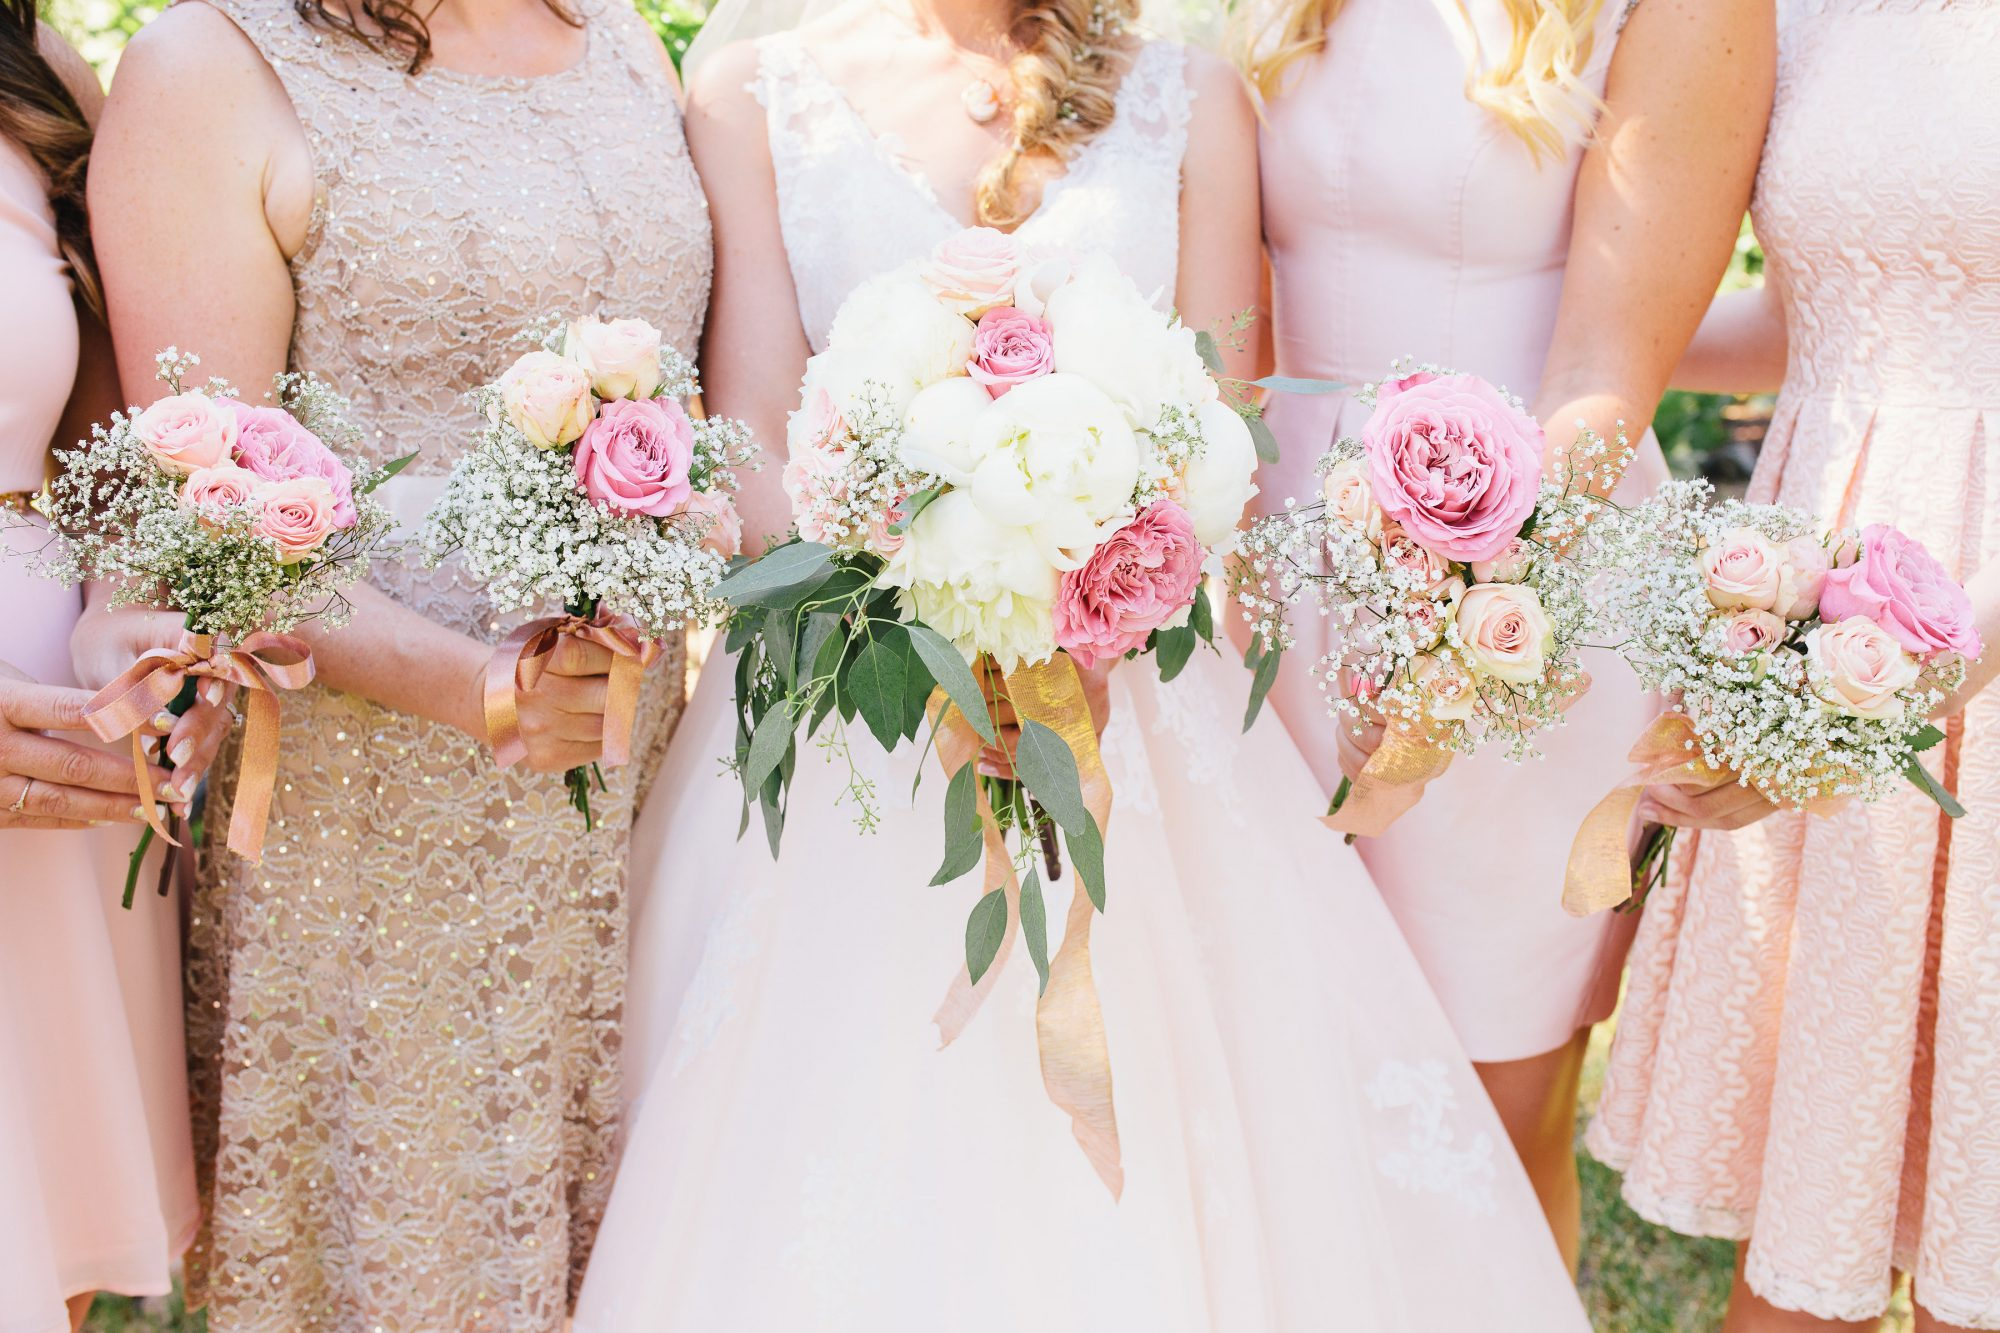 <p>What to Splurge and Save On for a Wedding</p>